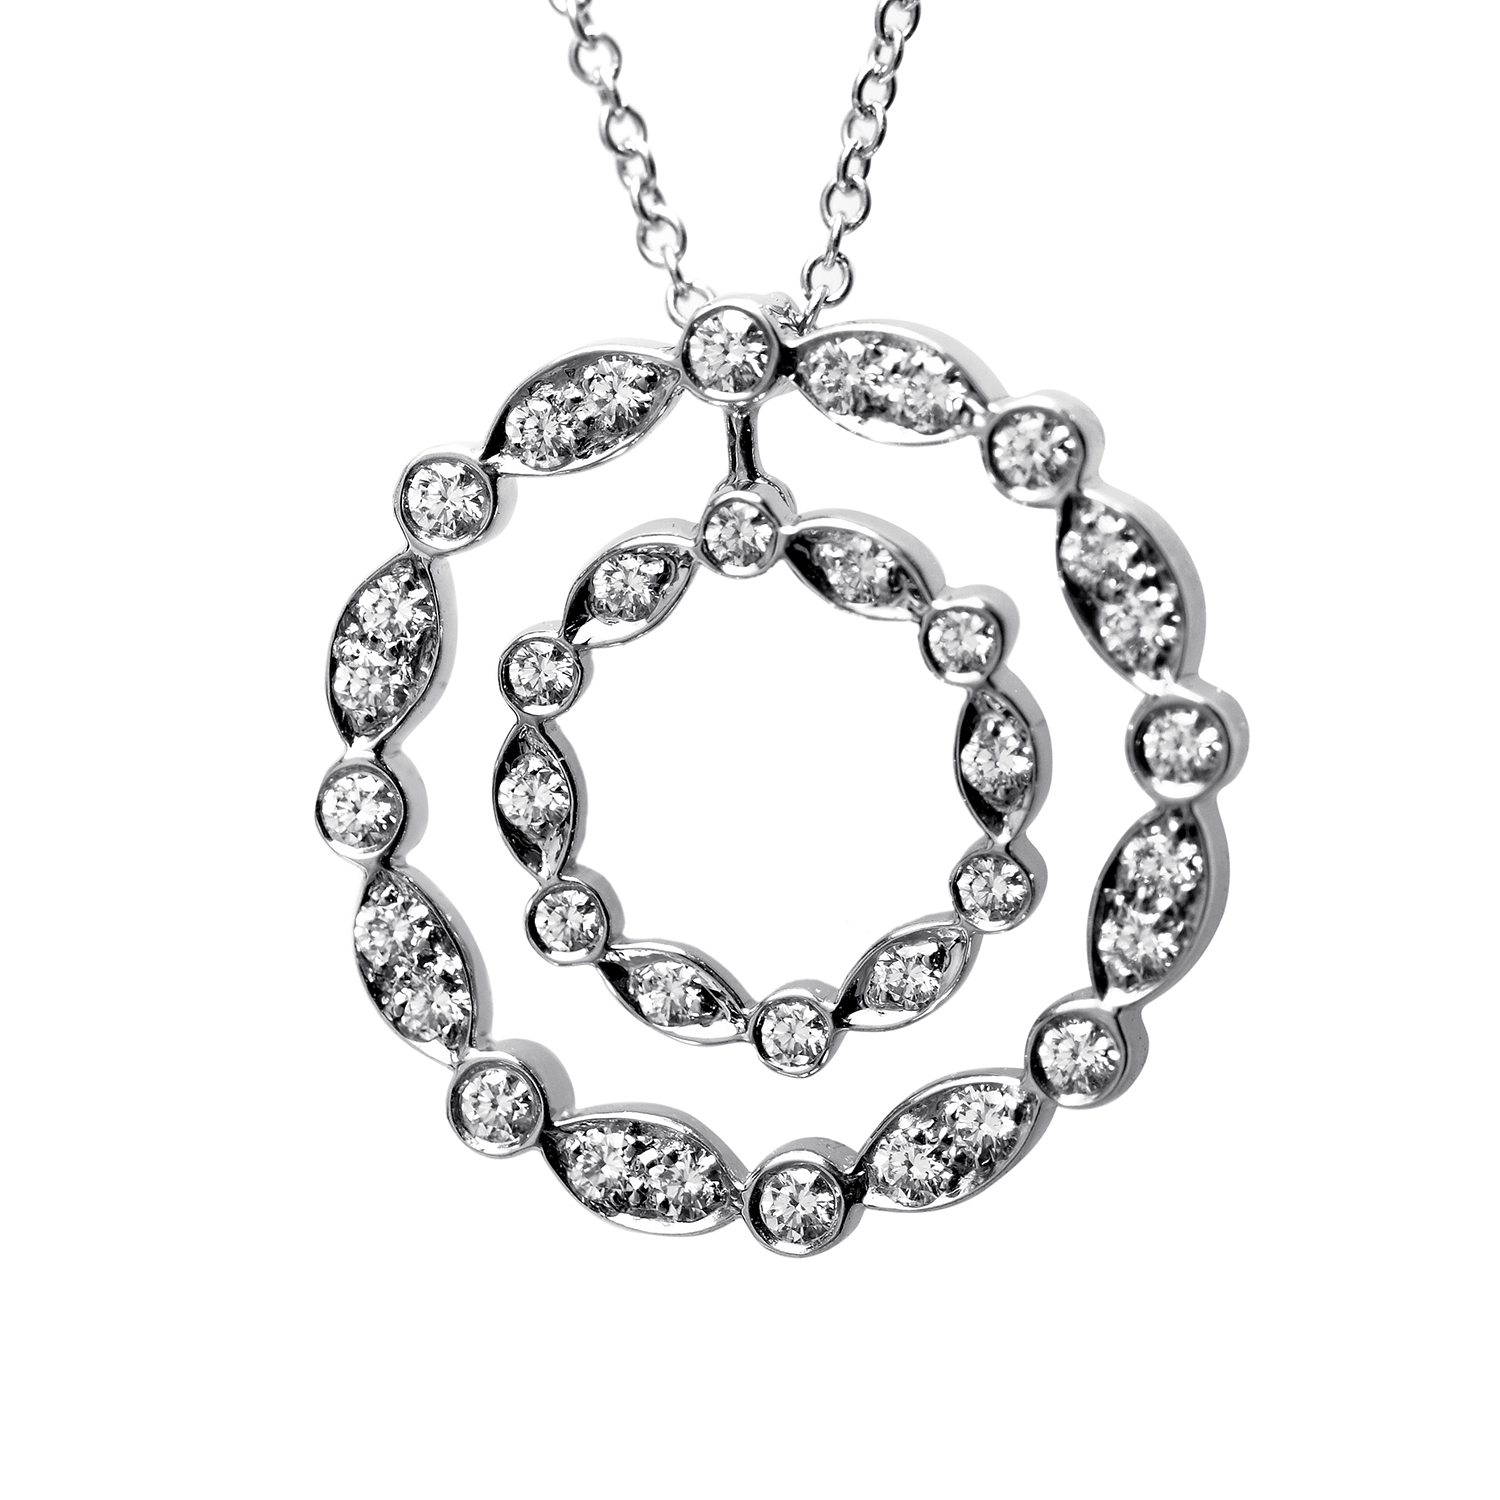 Tiffany & Co. Women's Platinum & Diamond Double Circle Pendant Necklace